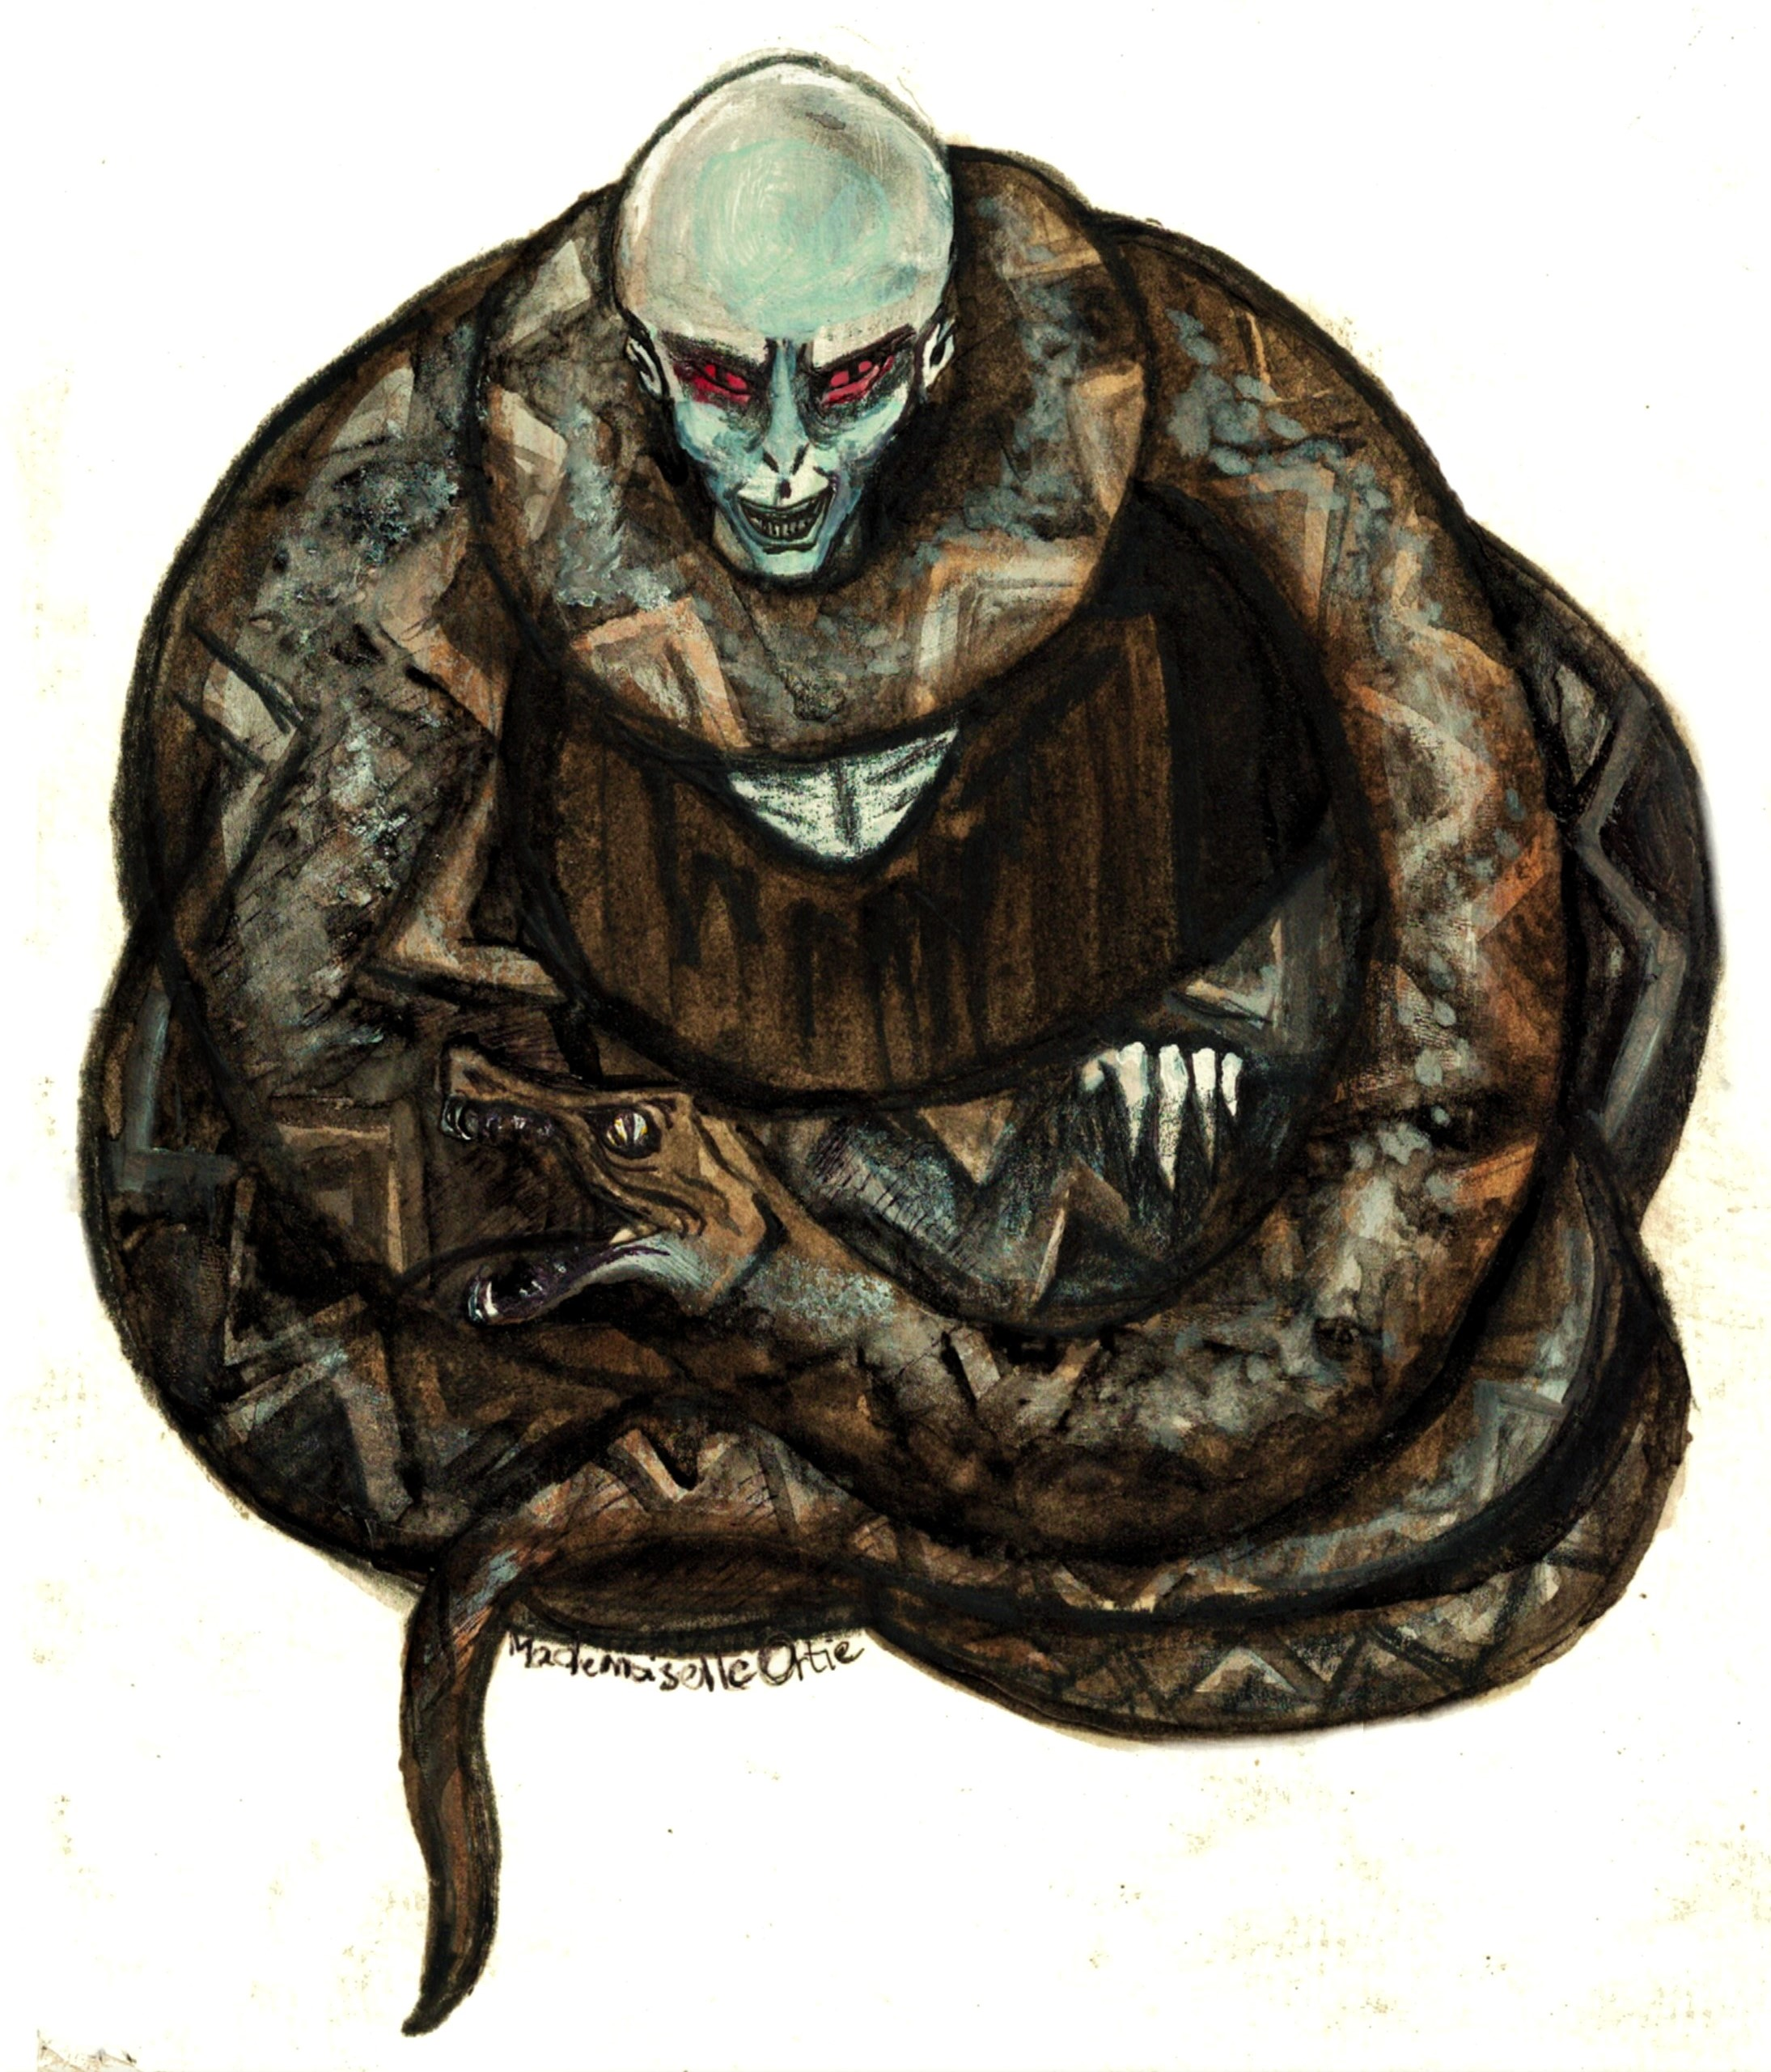 File:Lord Voldemort.jpg - Wikimedia Commons